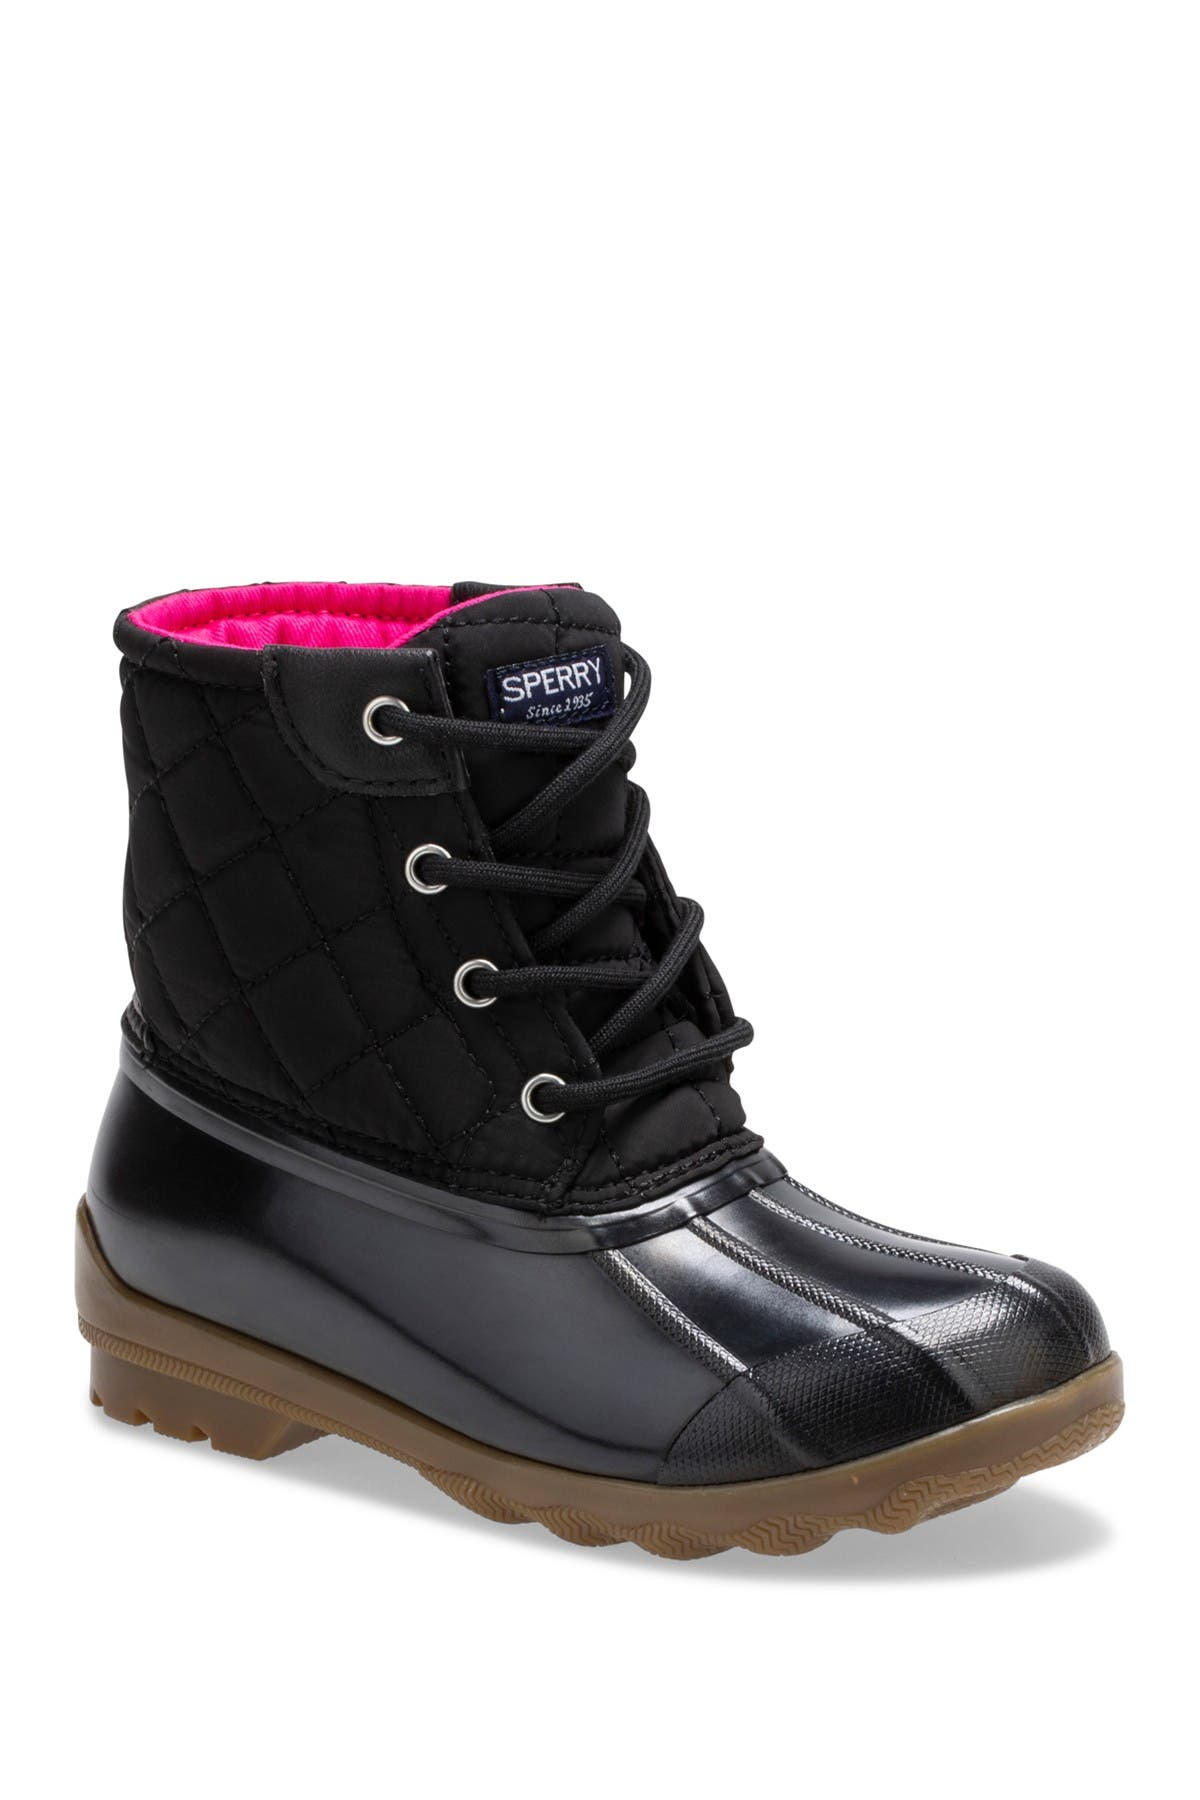 8M Sperry Top-Sider Port Boot Black